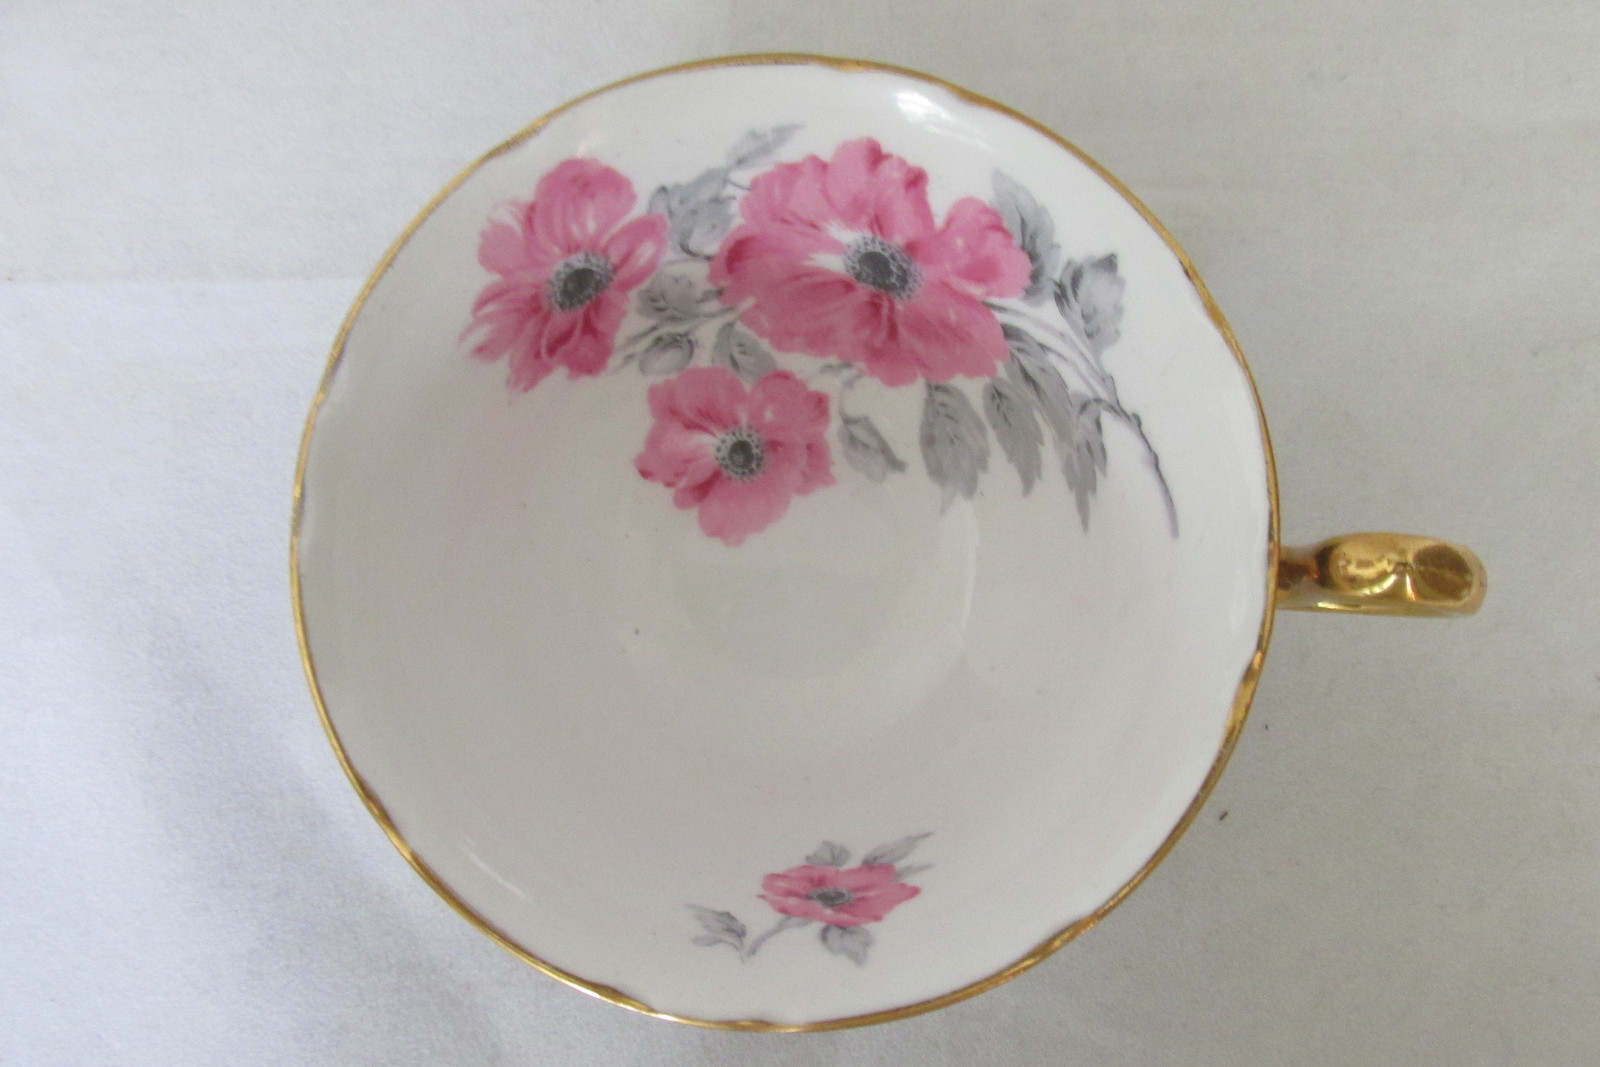 Vintage Royal Stafford English Bone China Cup & Saucer - Black with Pink Roses